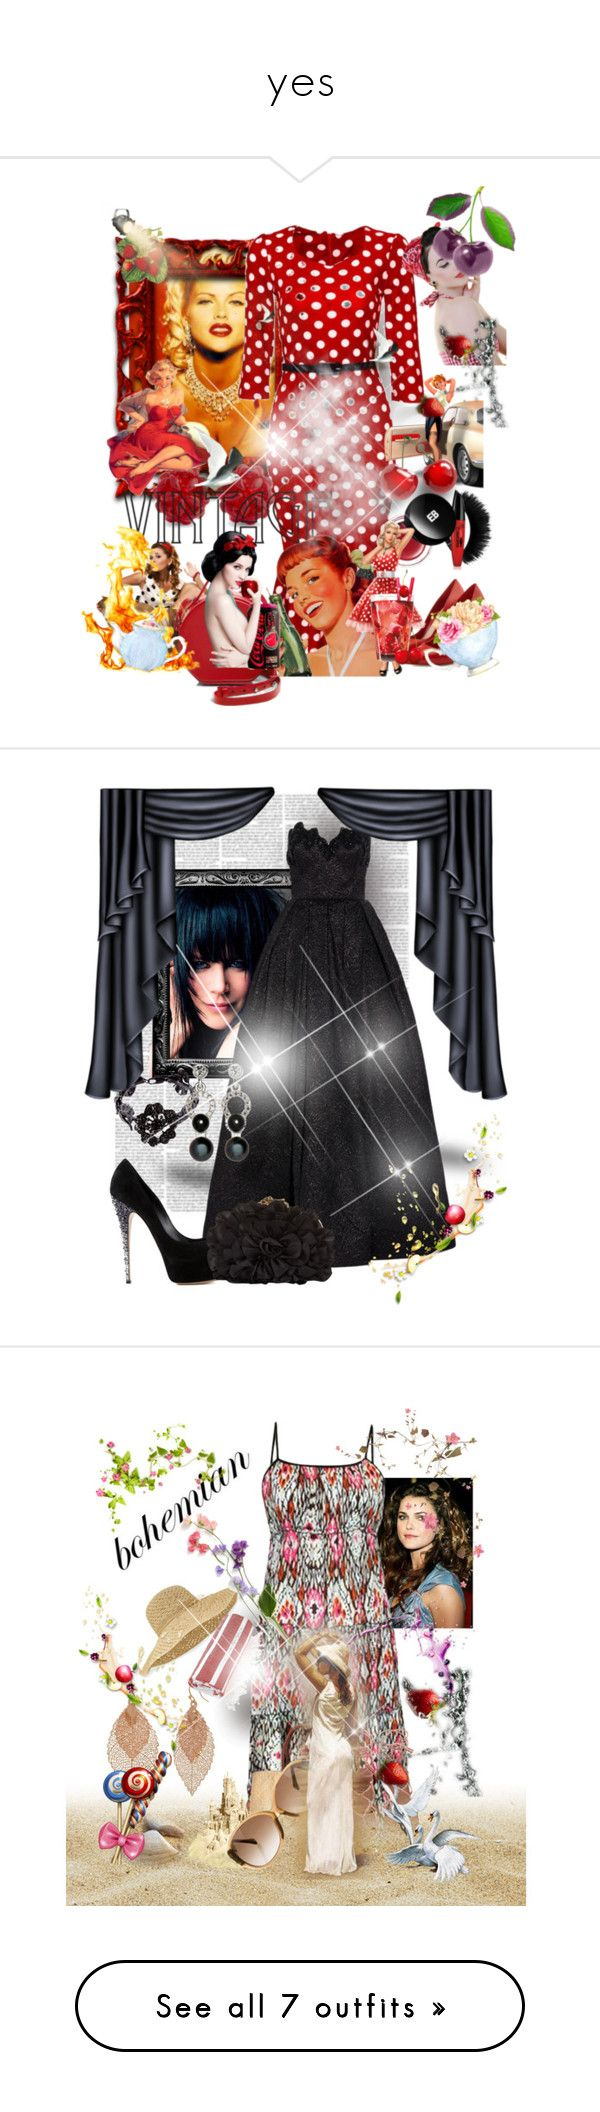 """""""yes"""" by princhelle-mack ❤ liked on Polyvore featuring Nicole, Alexander McQueen, Simone Rocha, Edward Bess, Nico Giani, Andrew Gn, Casadei, Valentino, Nathalie Jean and Franchi"""